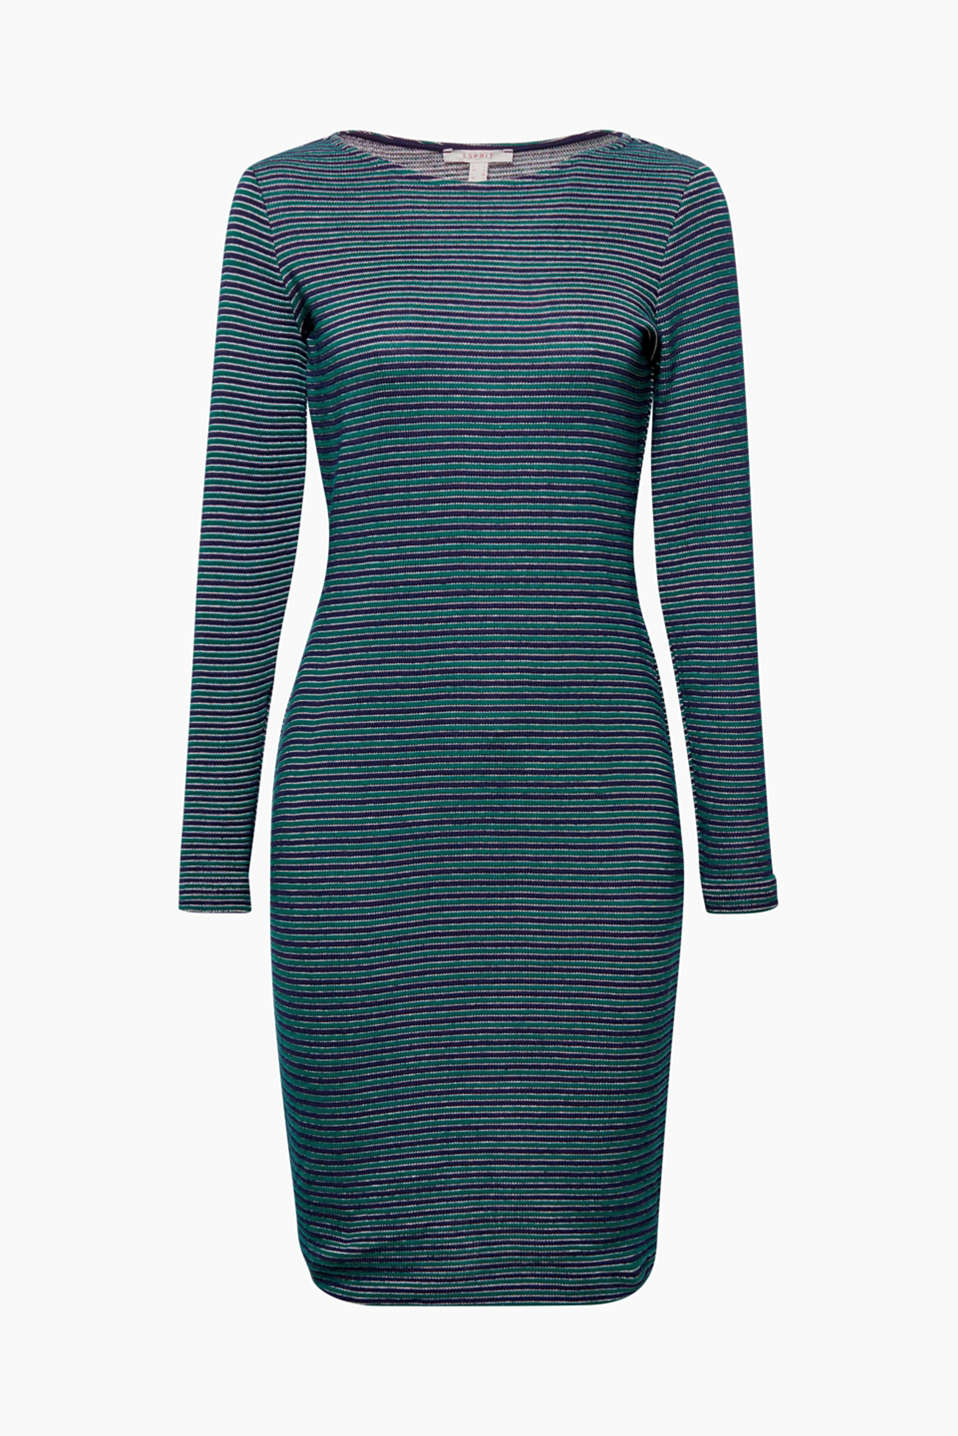 This dress in dense cotton jersey with a ribbed texture combines a feminine silhouette with sporty stripes!